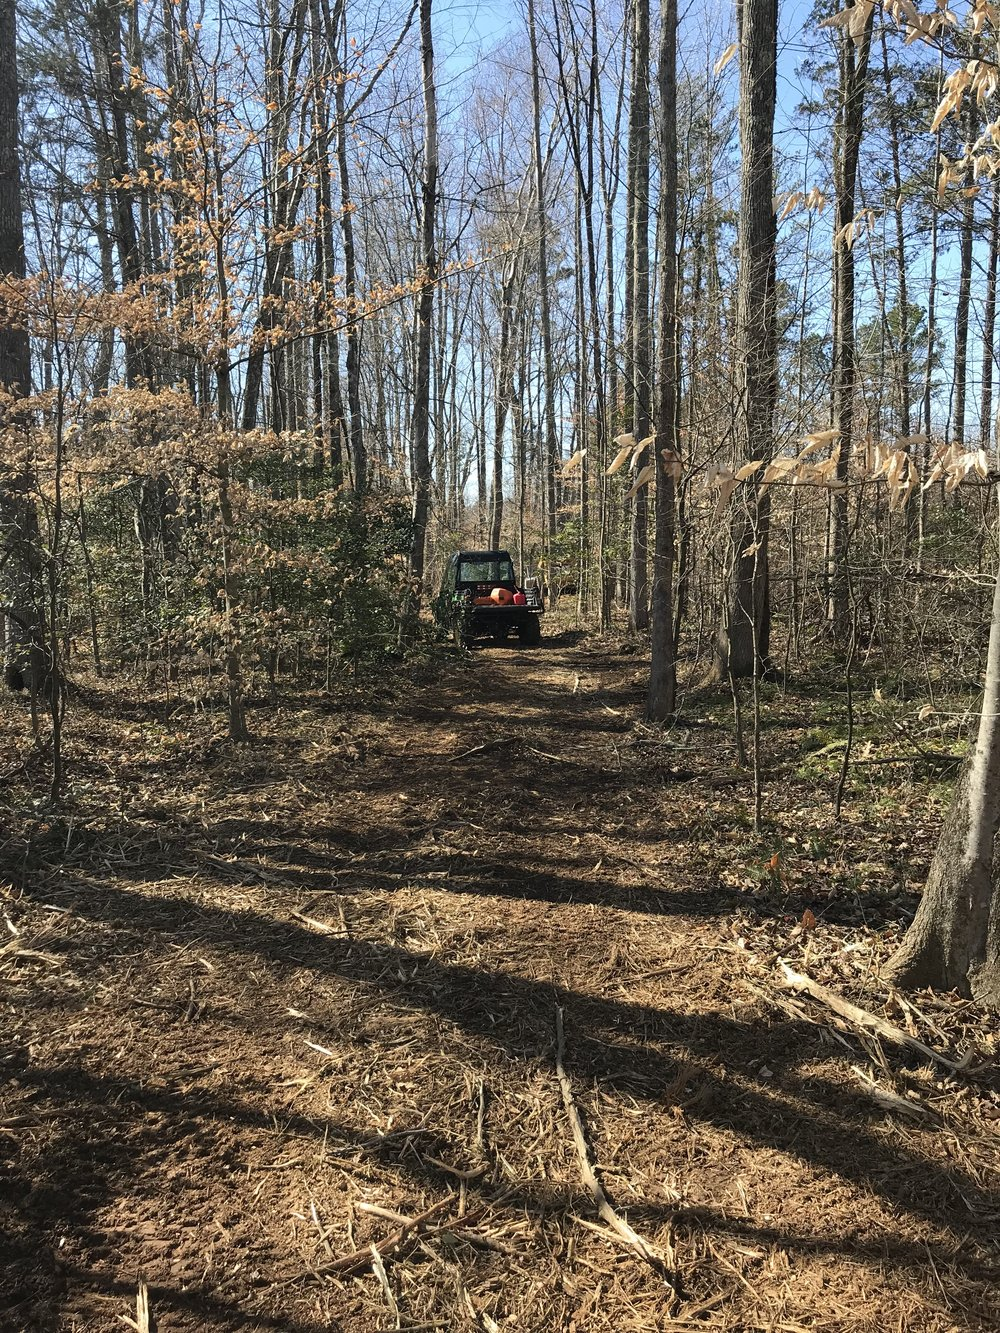 Cutting Trails in Chilesburg, VA with our modified CAT 297 and Gator 855D support vehicle